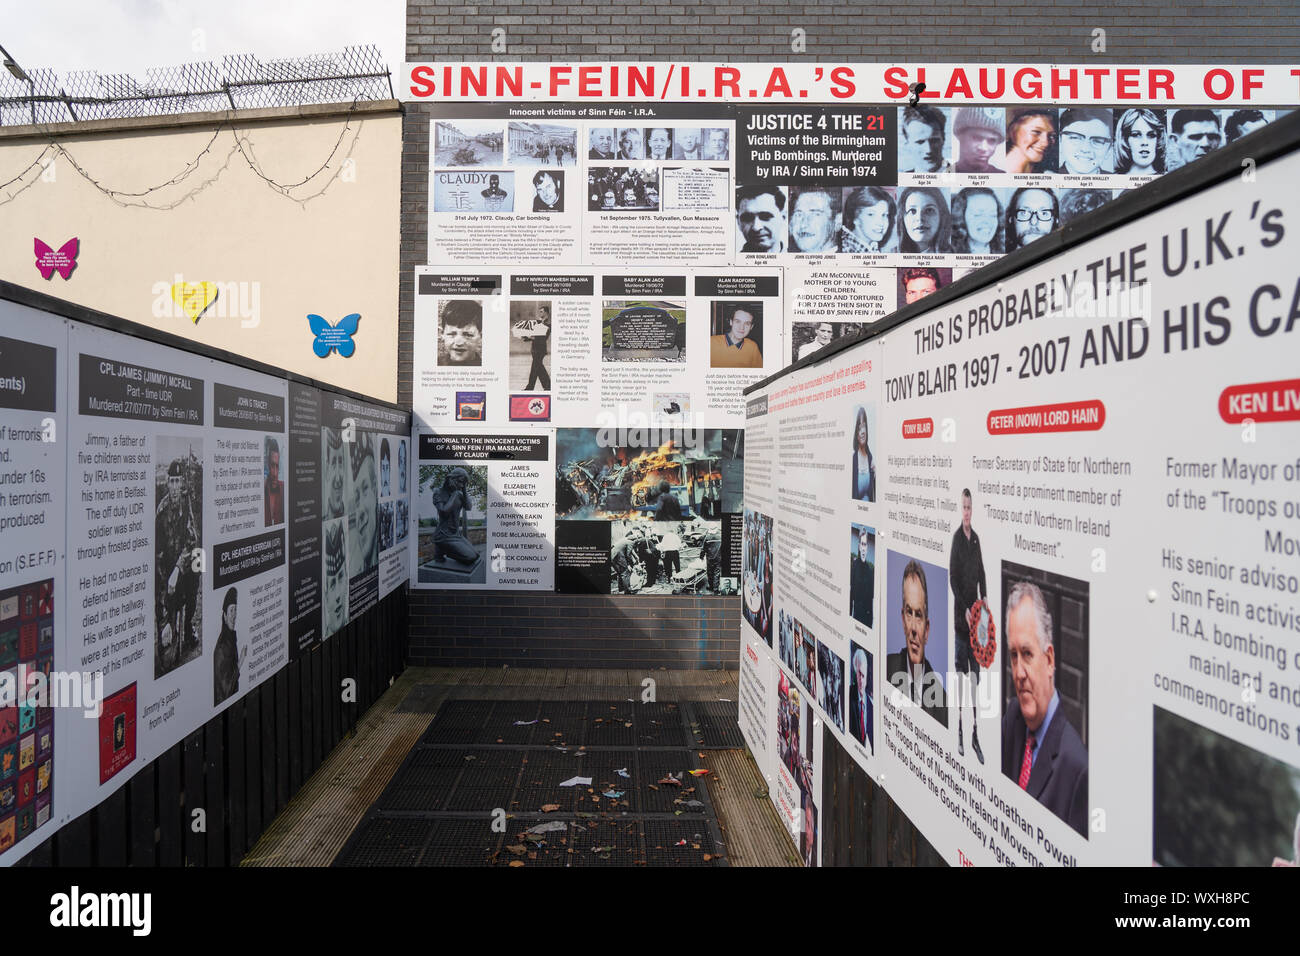 Political murals on the unionist side of west Belfast. From a series of travel photos in Belfast. Photo date: Friday, September 6, 2019. Photo: Roger Stock Photo